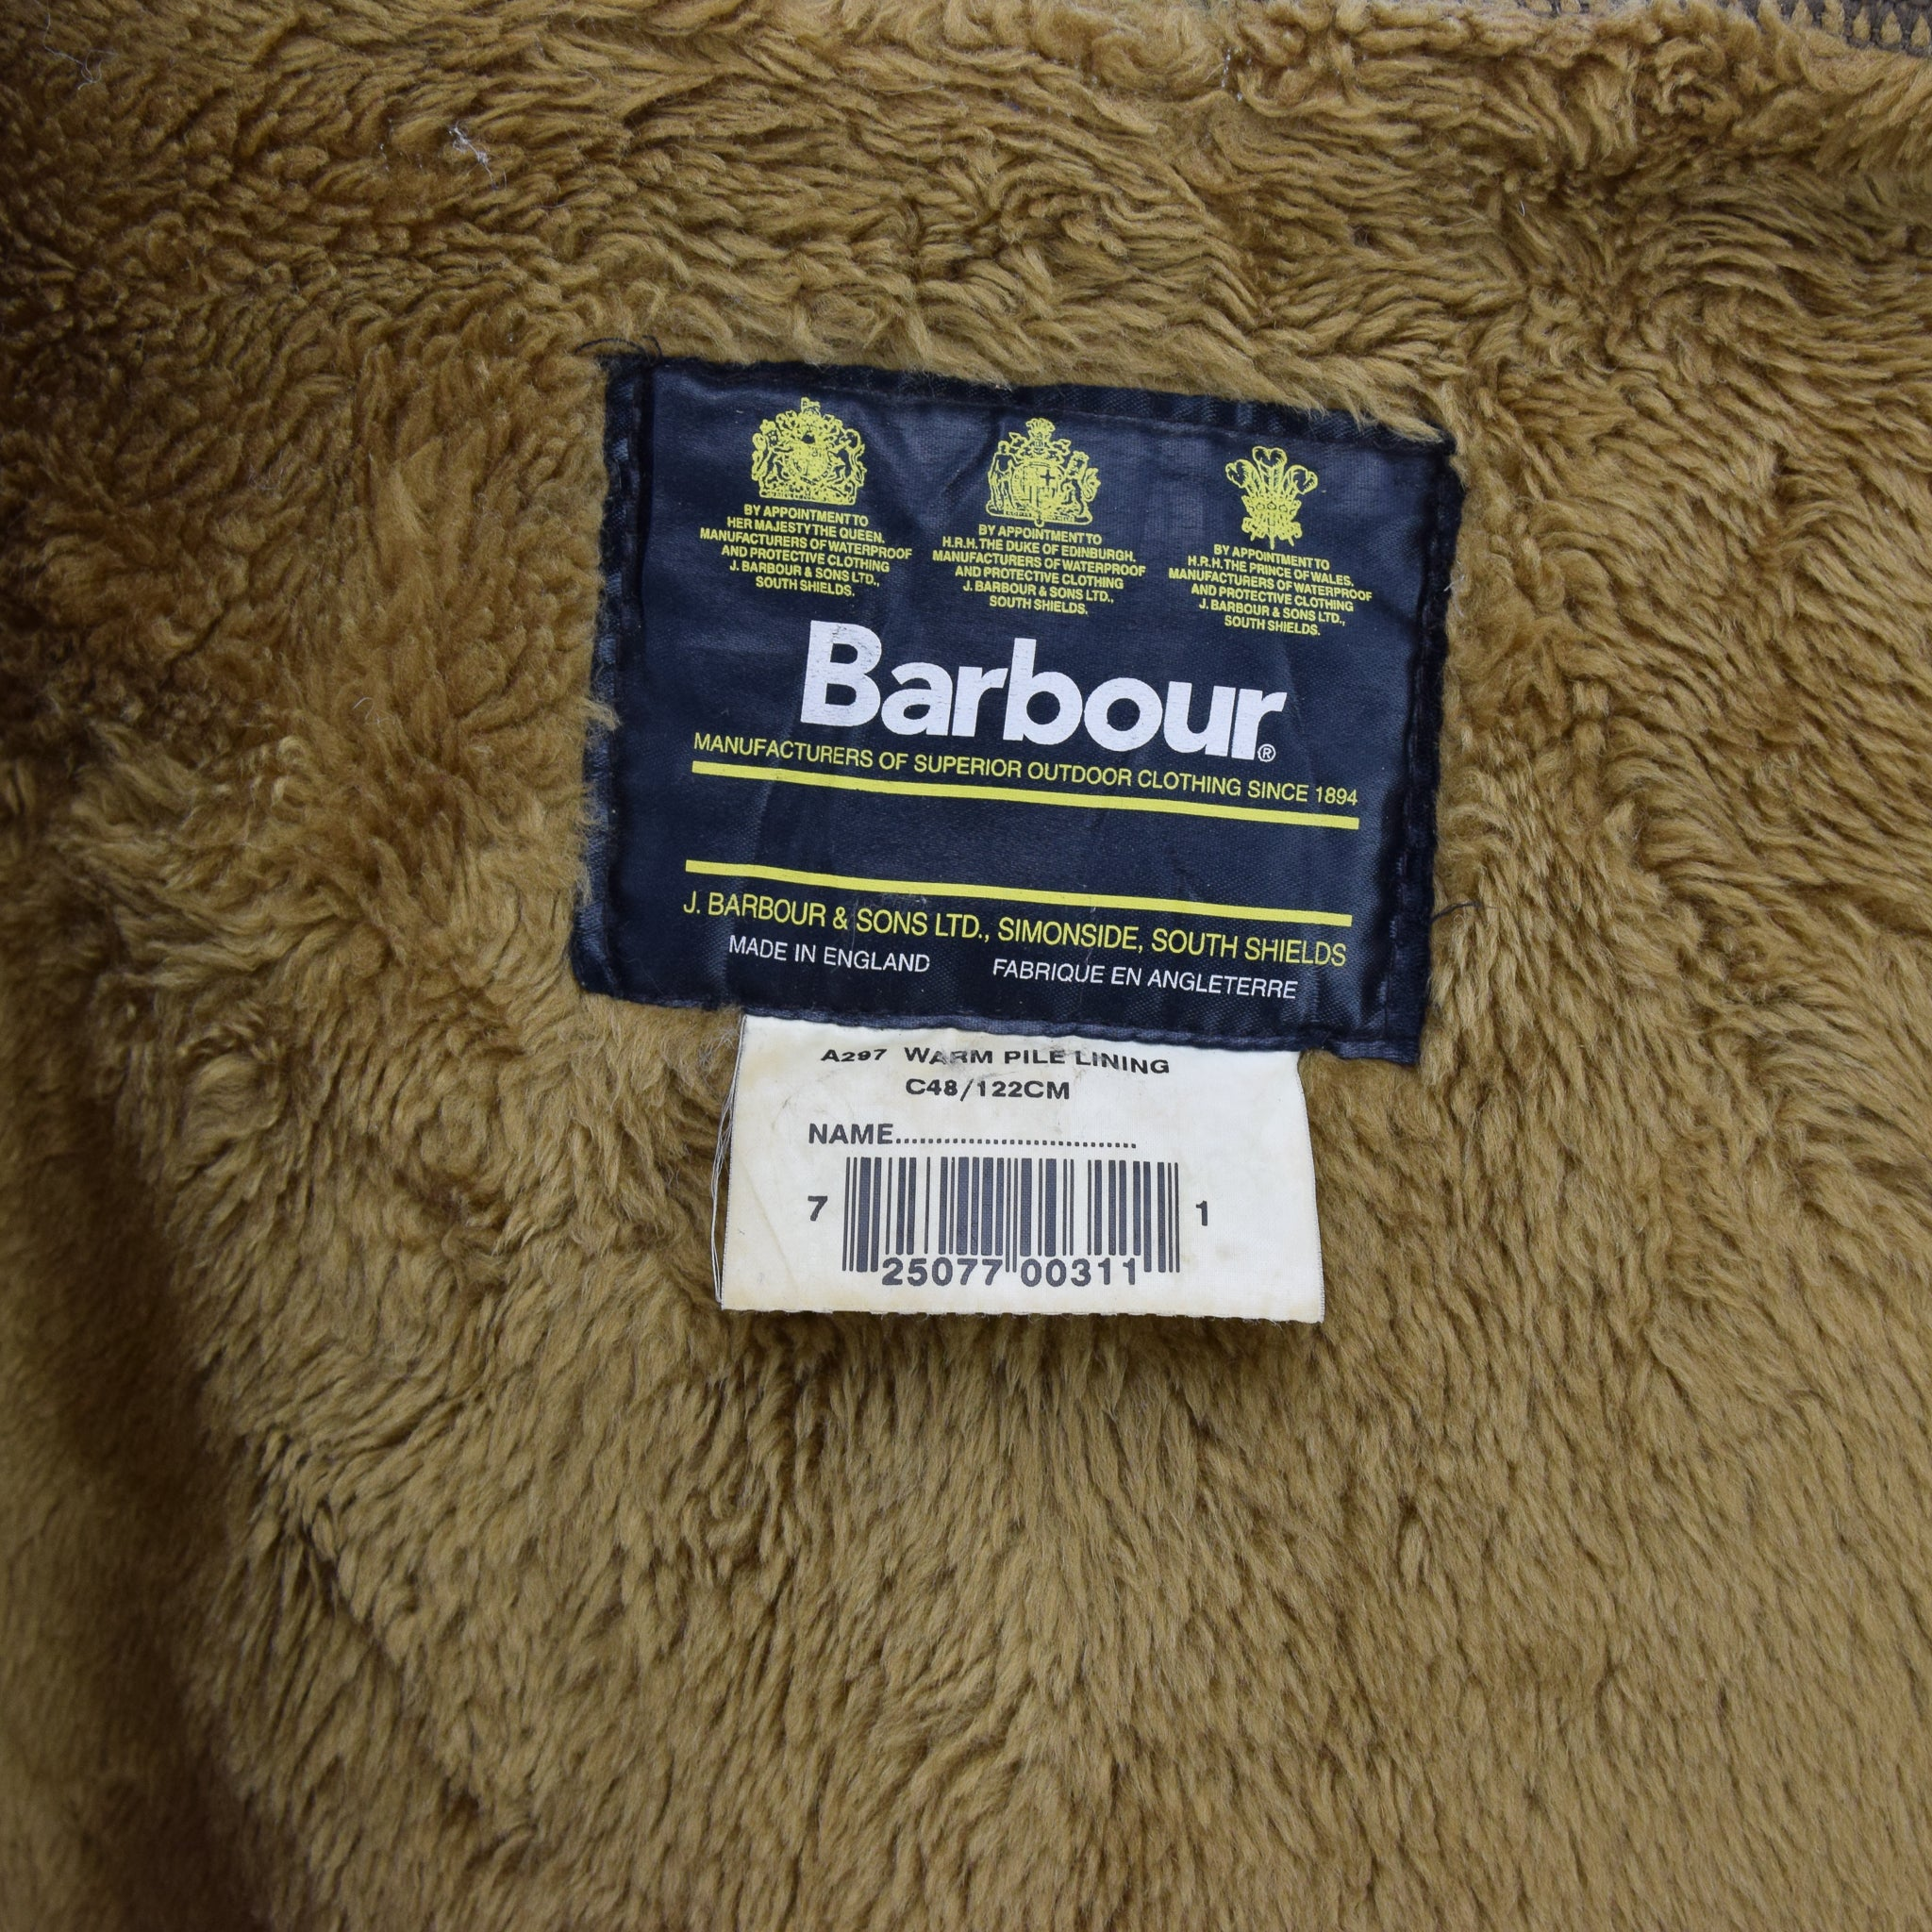 Vintage Barbour A297 Warm Pile Lining Faux Fur Liner Made In England C48 / 122cm label